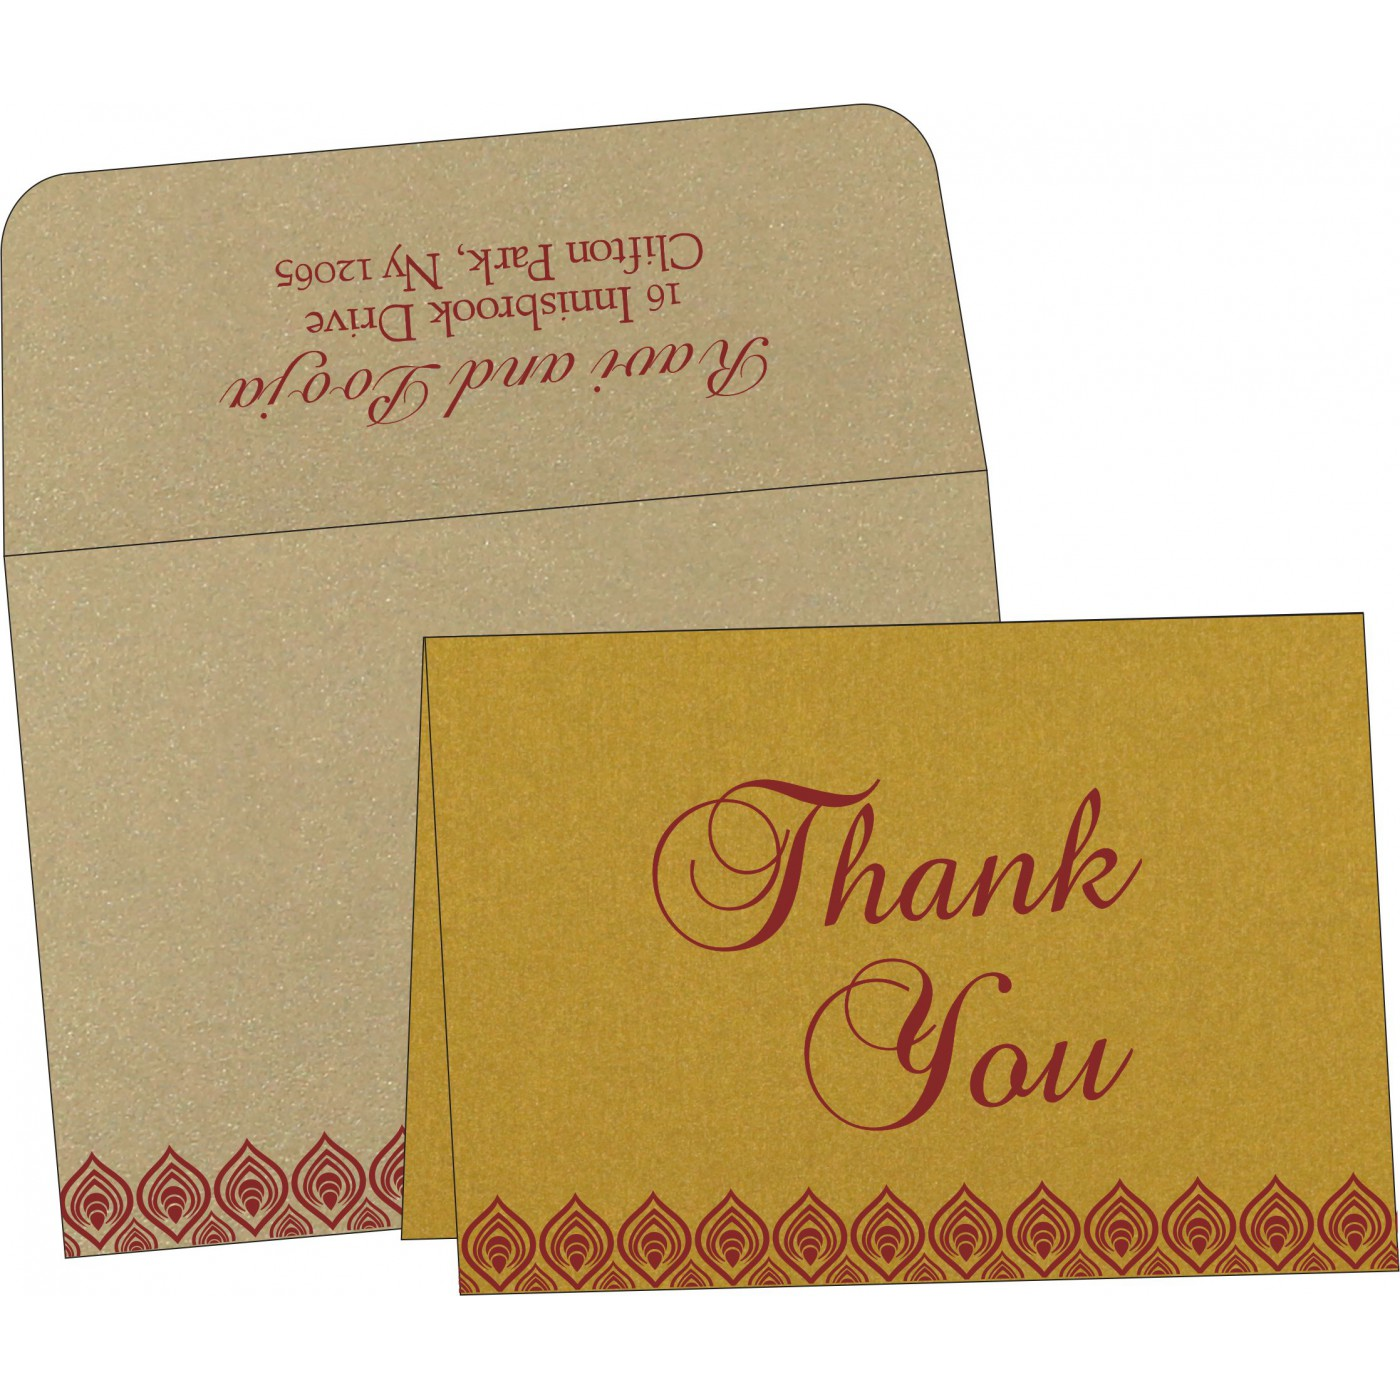 Thank You Cards : TYC-1506 - 123WeddingCards